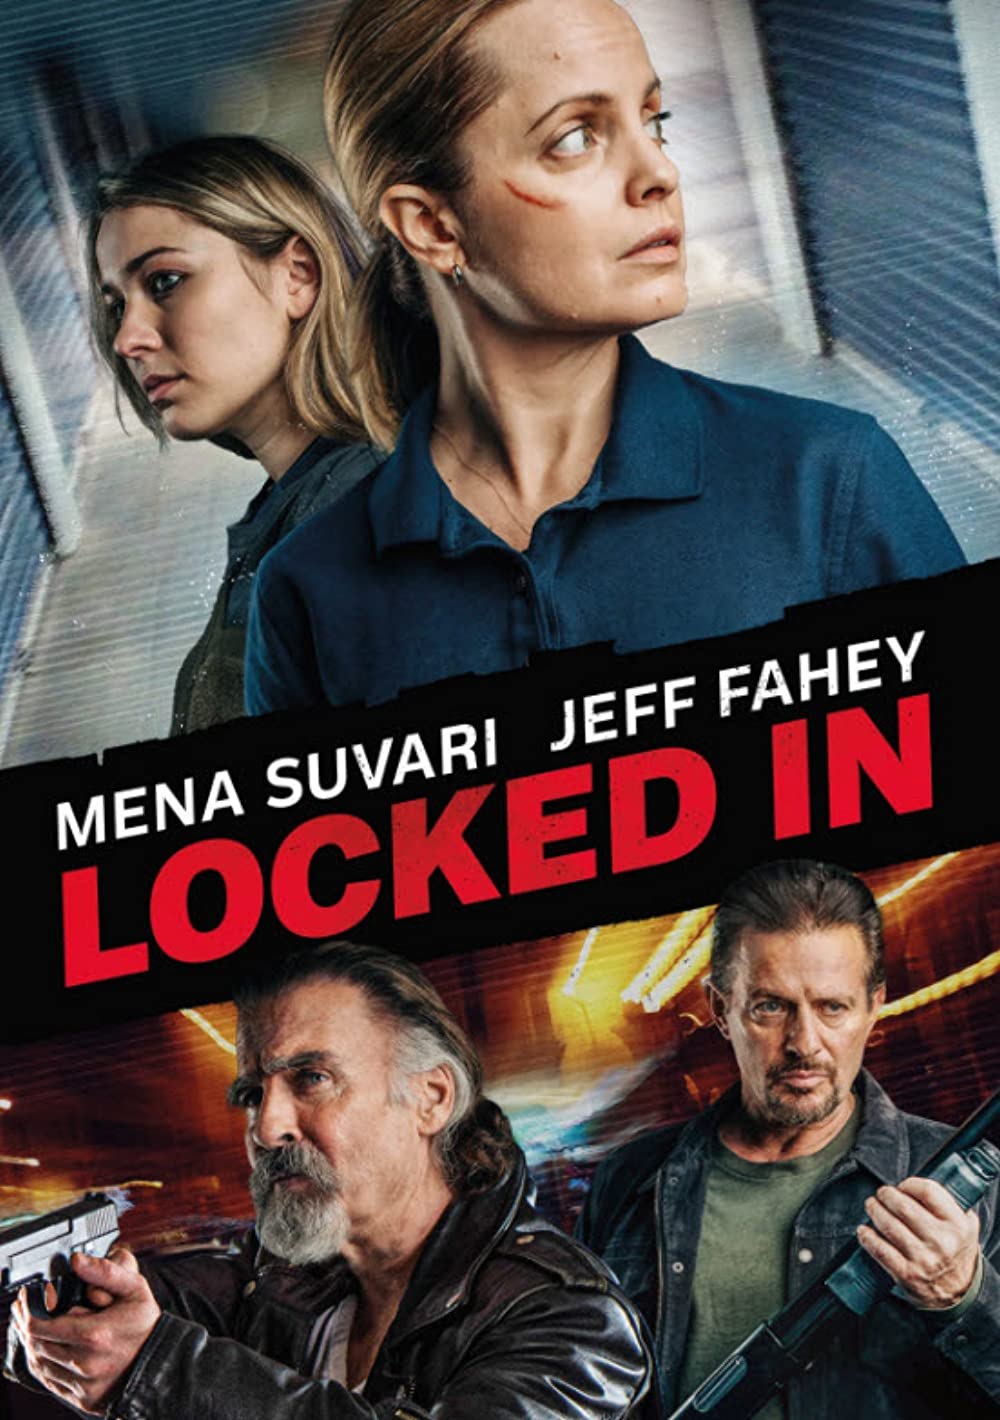 Locked In 2021 English Full Movie 720p HDRip 790MB Download